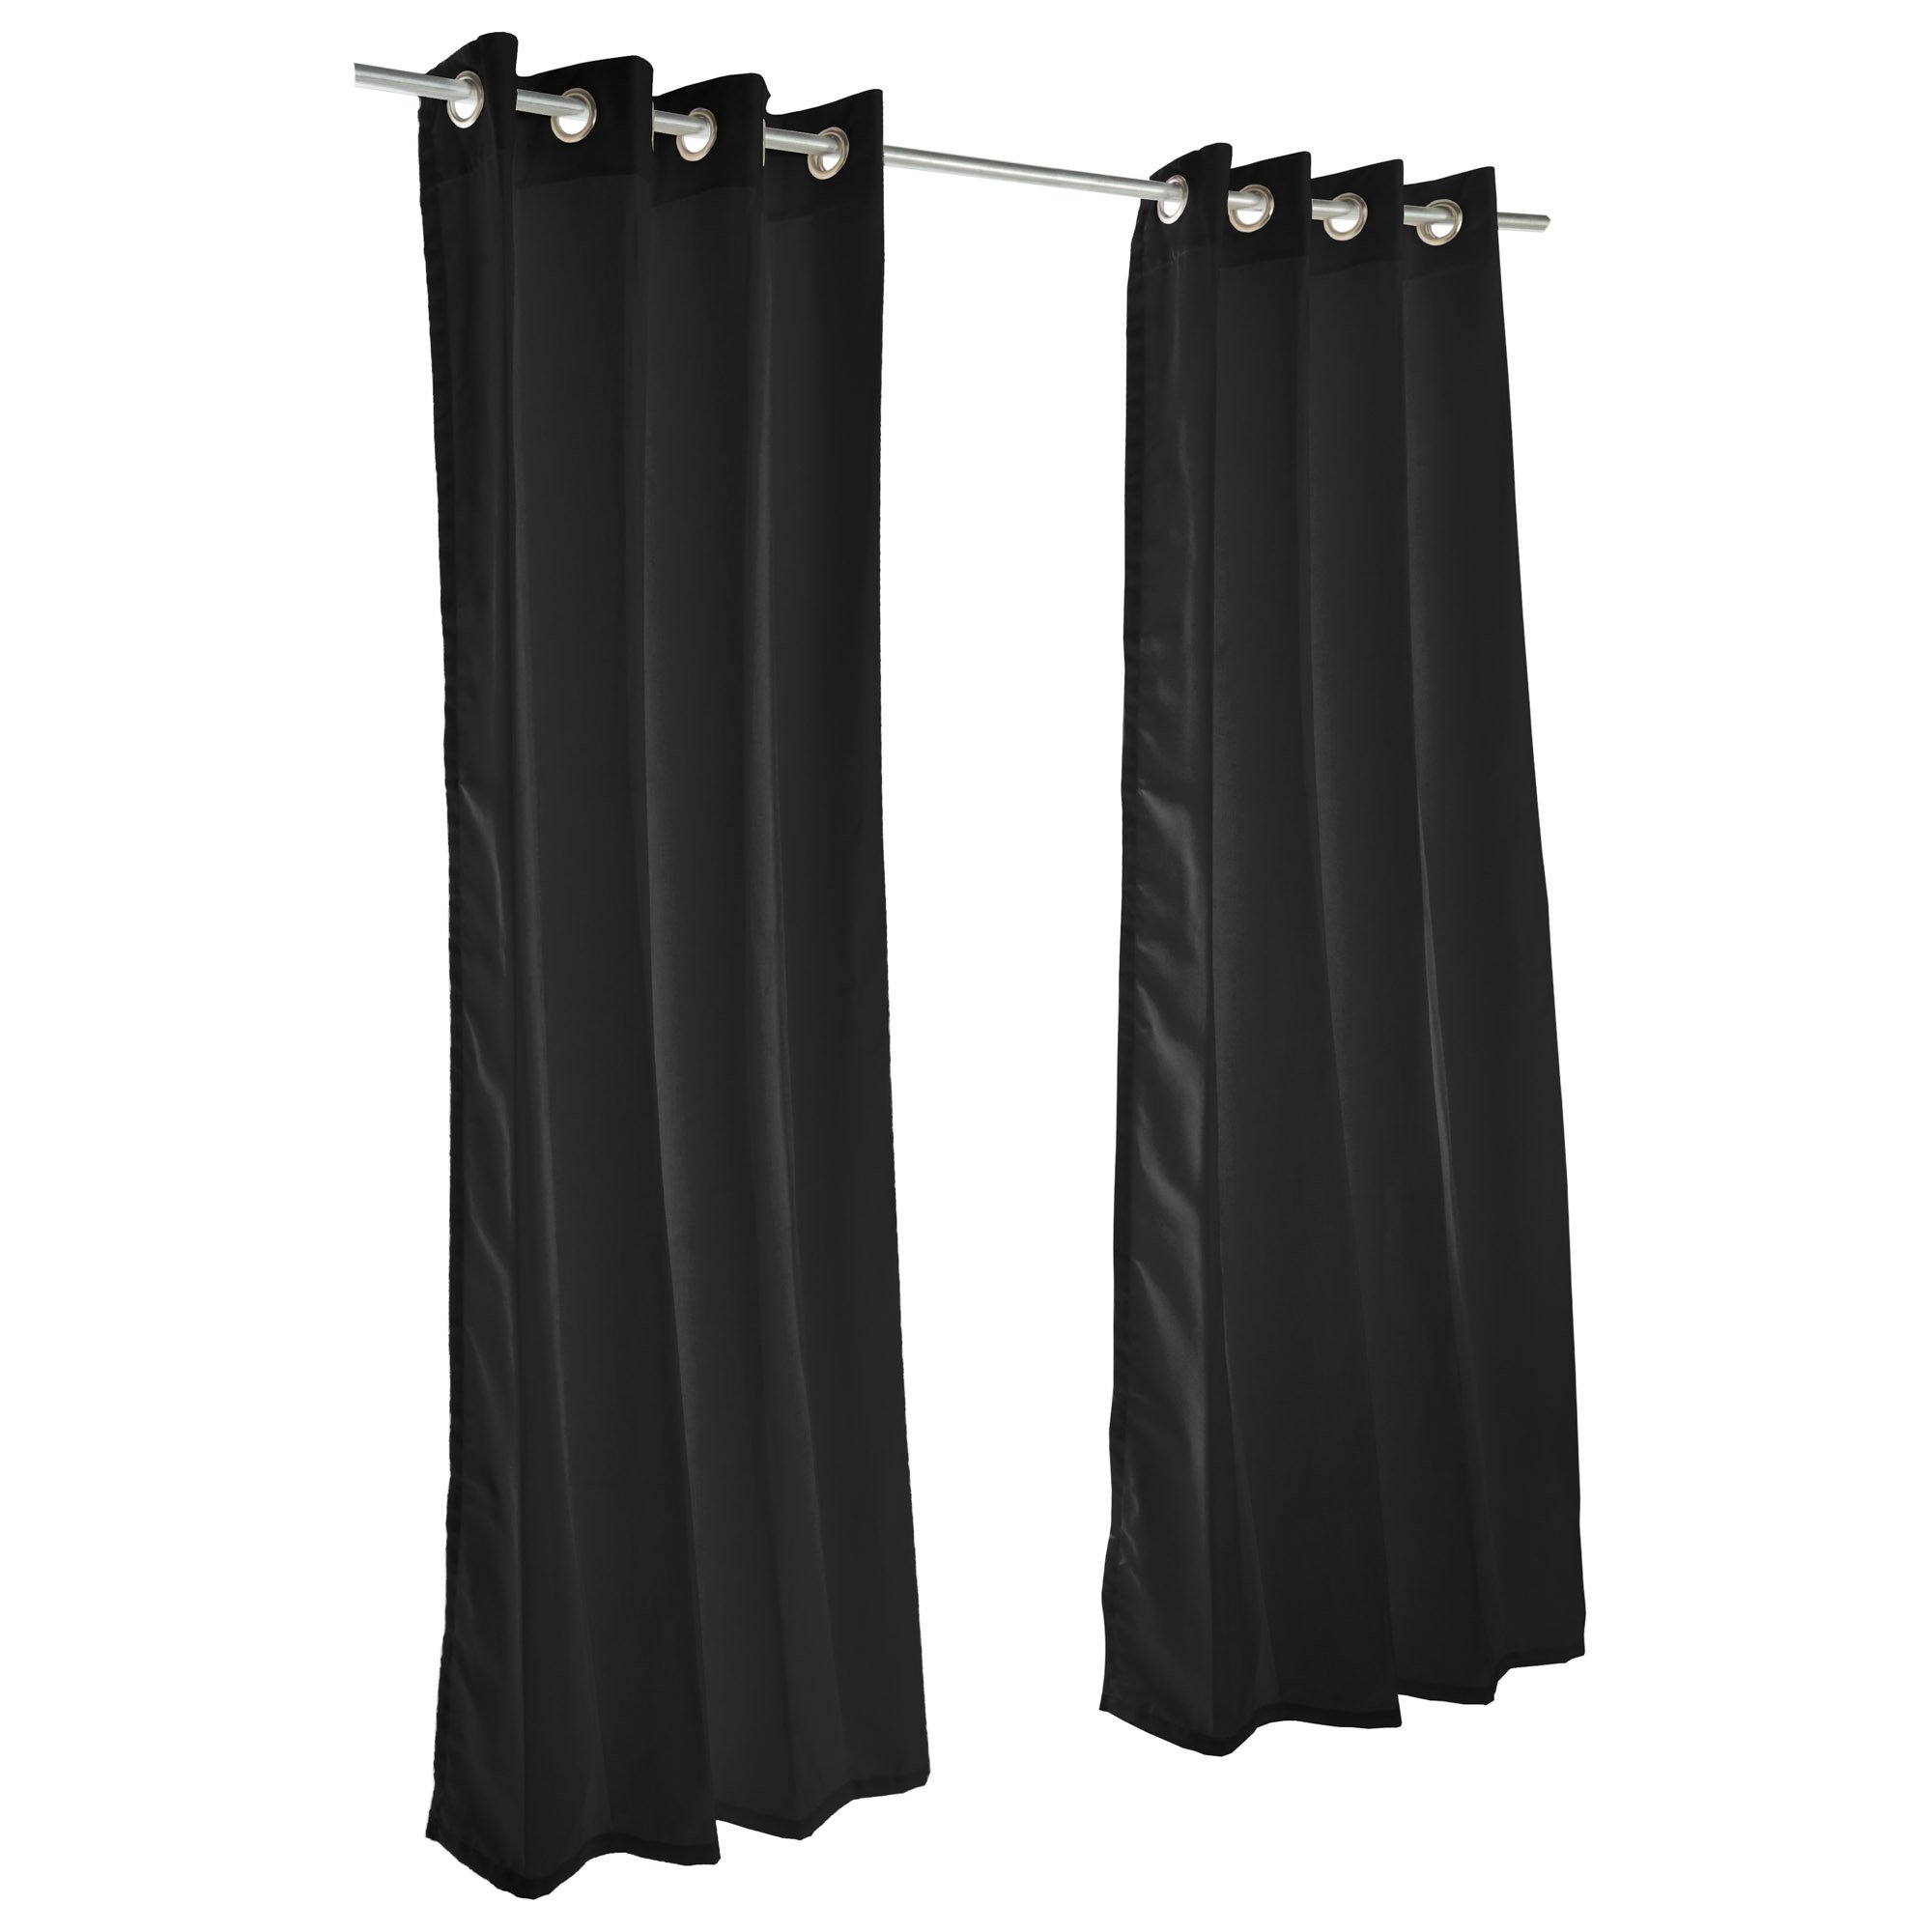 Essentials by DFO Black Sunbrella nickel grommeted outdoor curtain 108 long